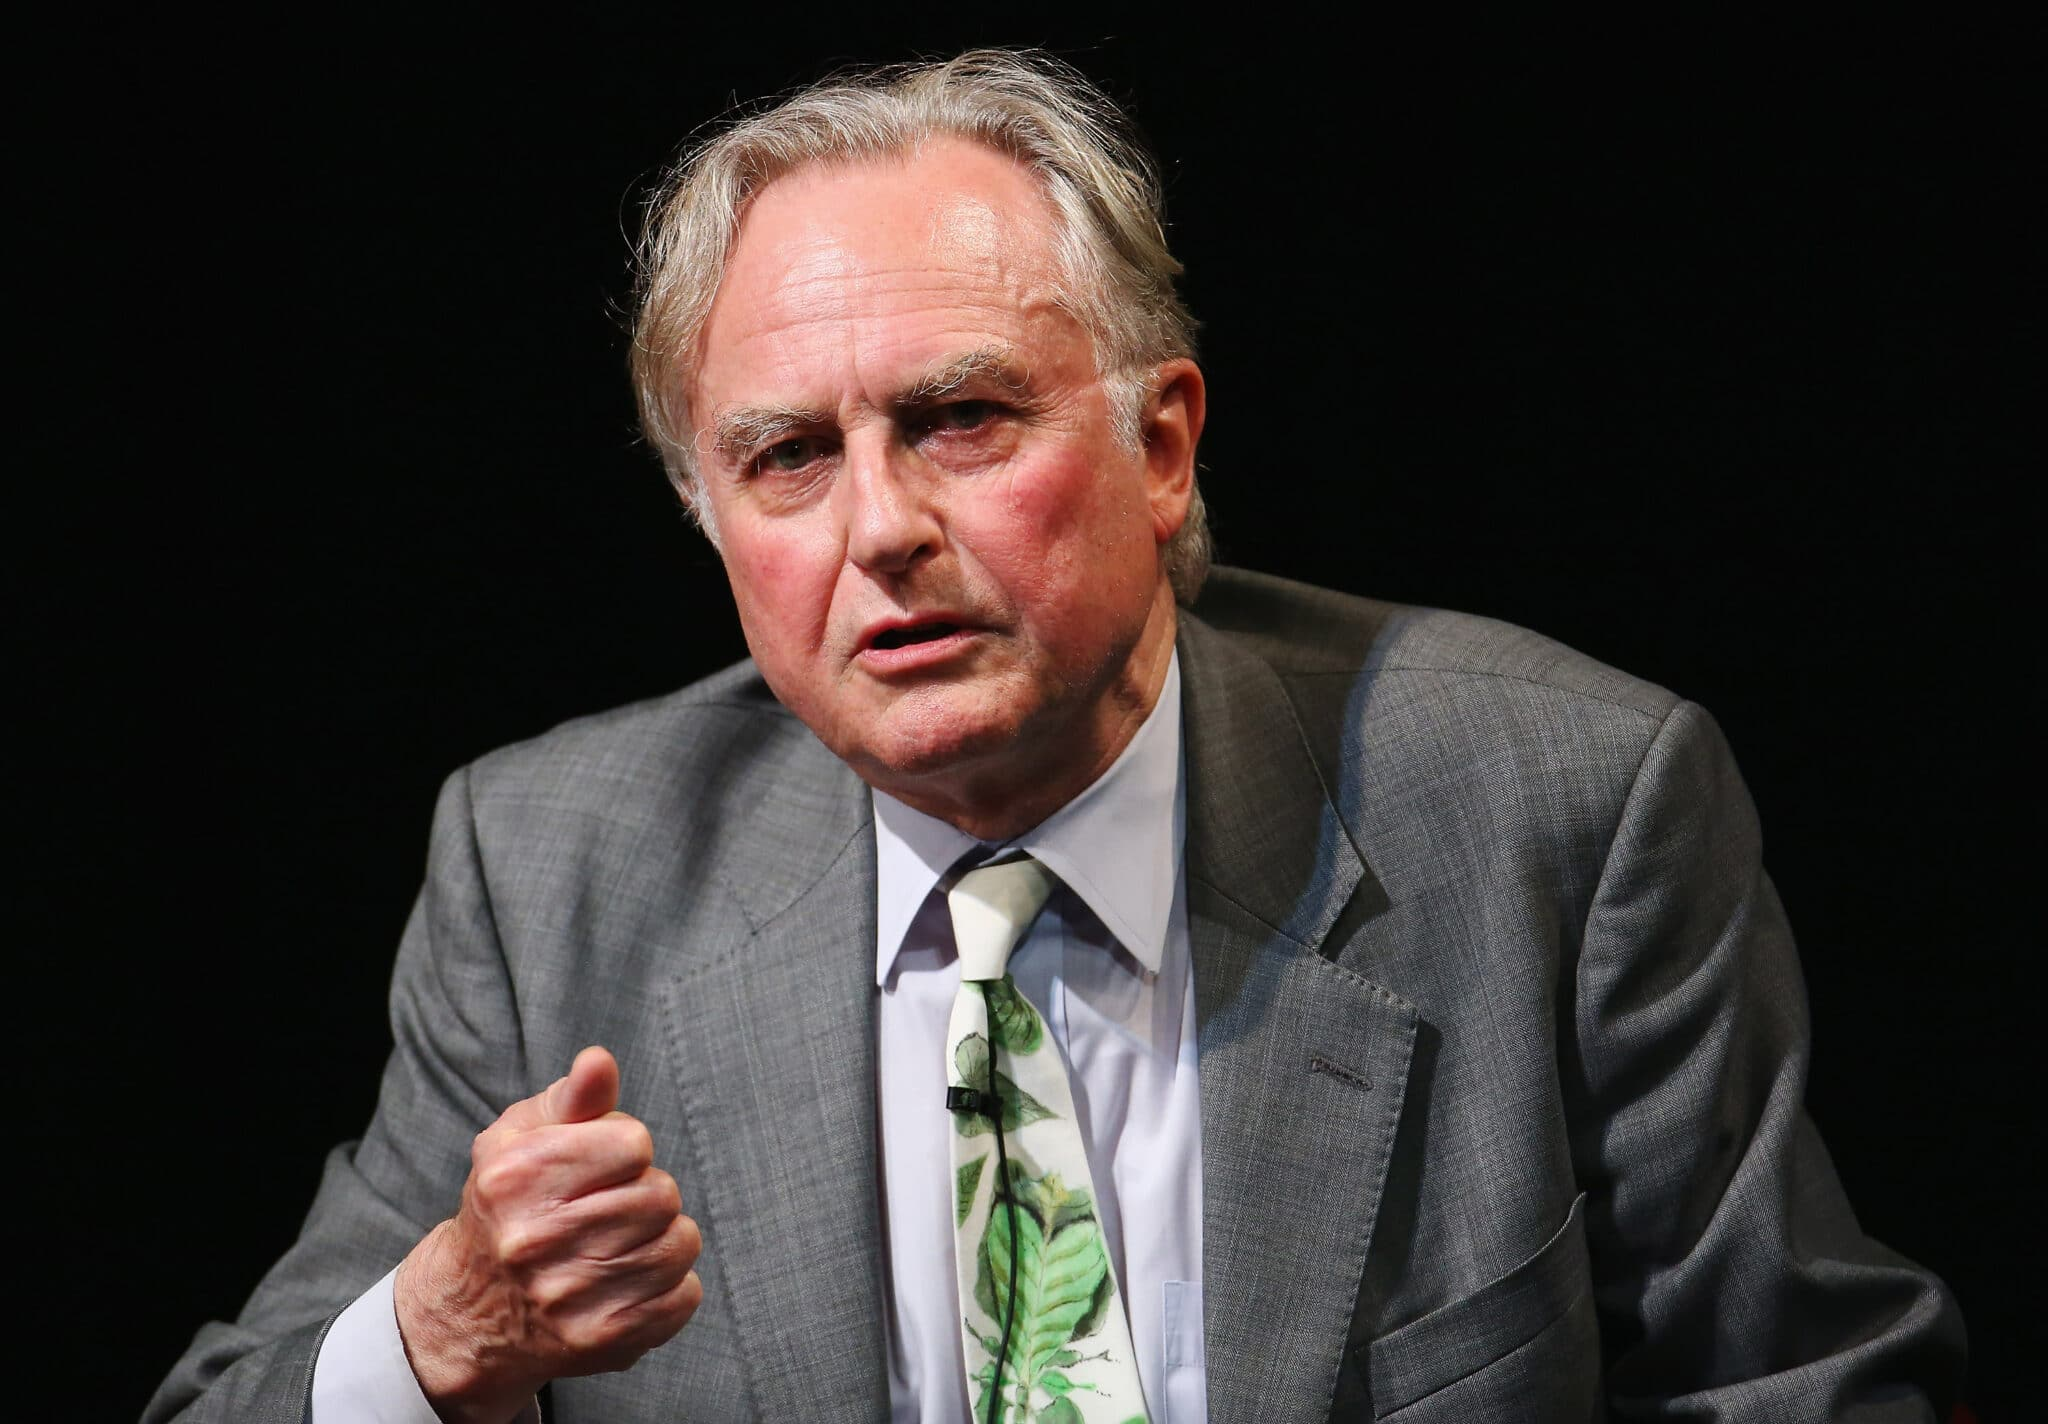 Richard Dawkins stripped of his highest honour after 'demeaning' trans lives